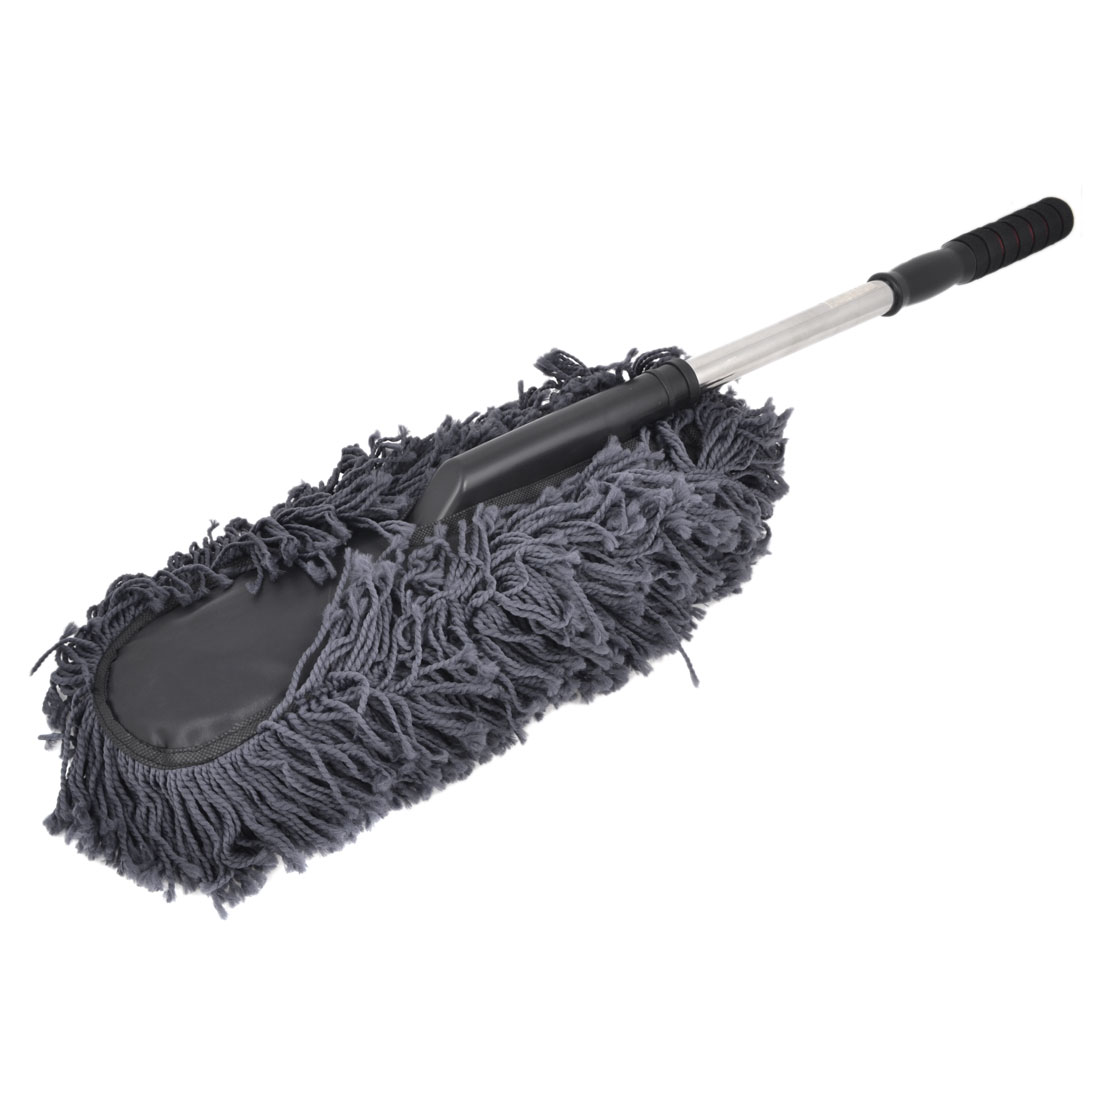 Dark Gray Nonslip Handgrip Microfiber Chenille Car Cleaning Brush Tool 77cm Long